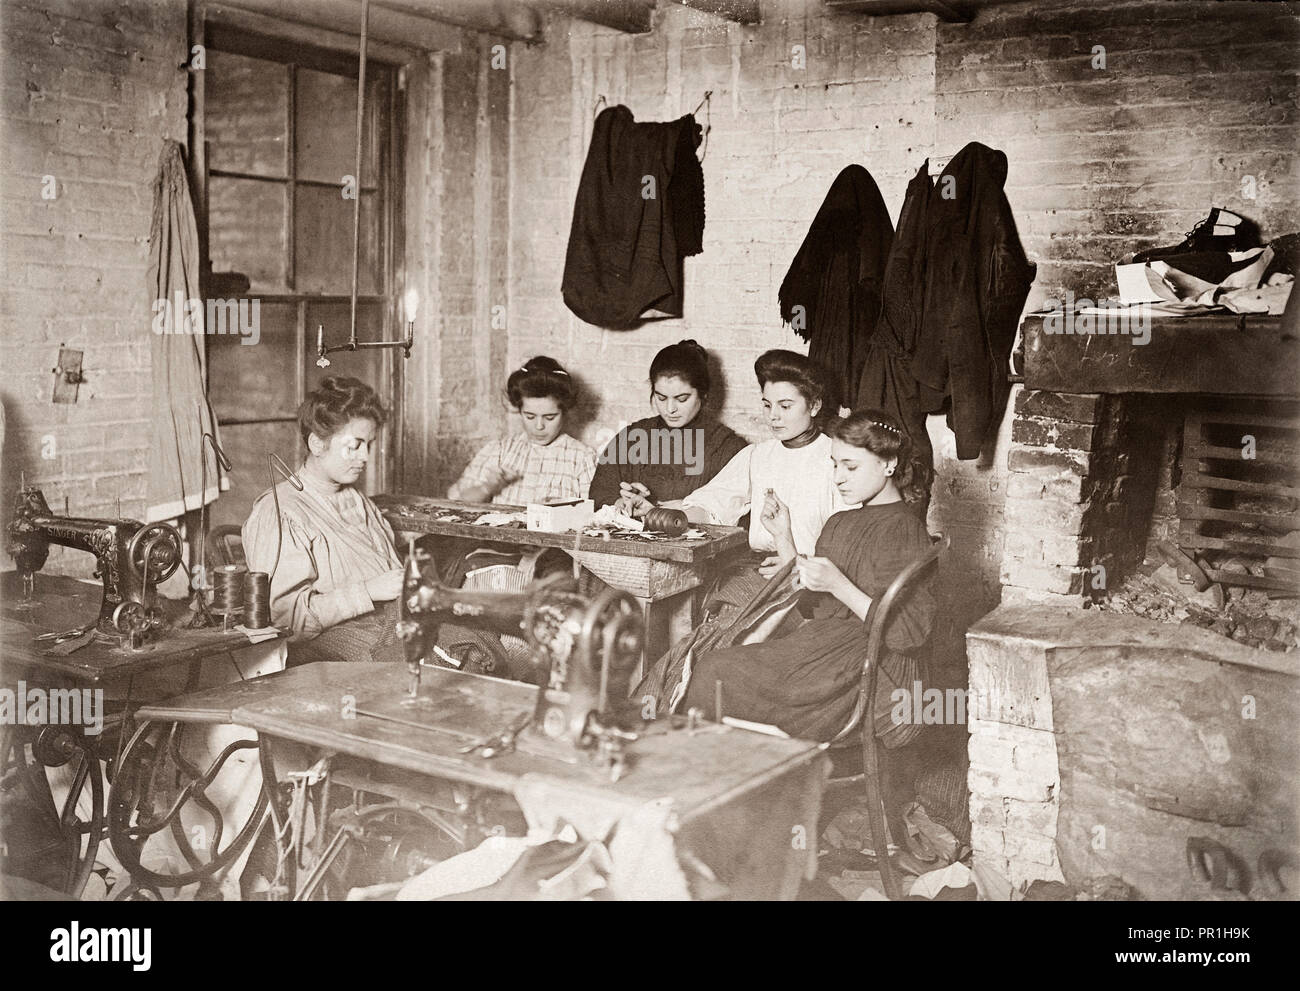 Five young seamstresses working for a starvation wage in a New York tenement sweat shop.  Circa 1906.  After a photograph by Lewis Hine, 1874-1940.  Hine was a sociology teacher who used photography to record social problems and spur reform. - Stock Image